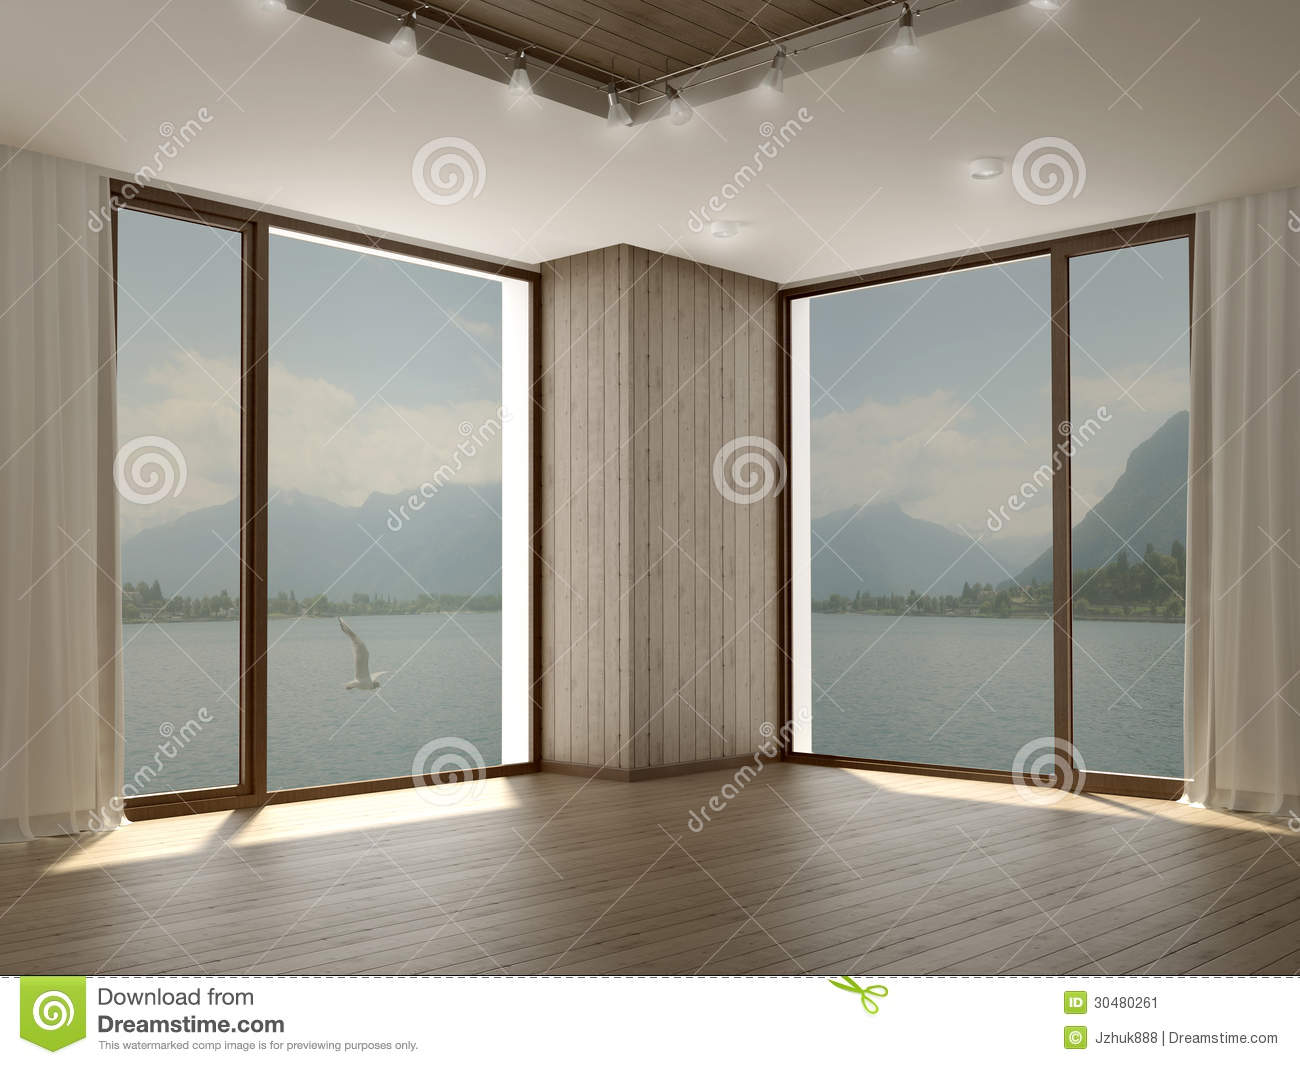 Home Design Architectural Free Download Modern Room With Two Large Windows In Corner Stock Image